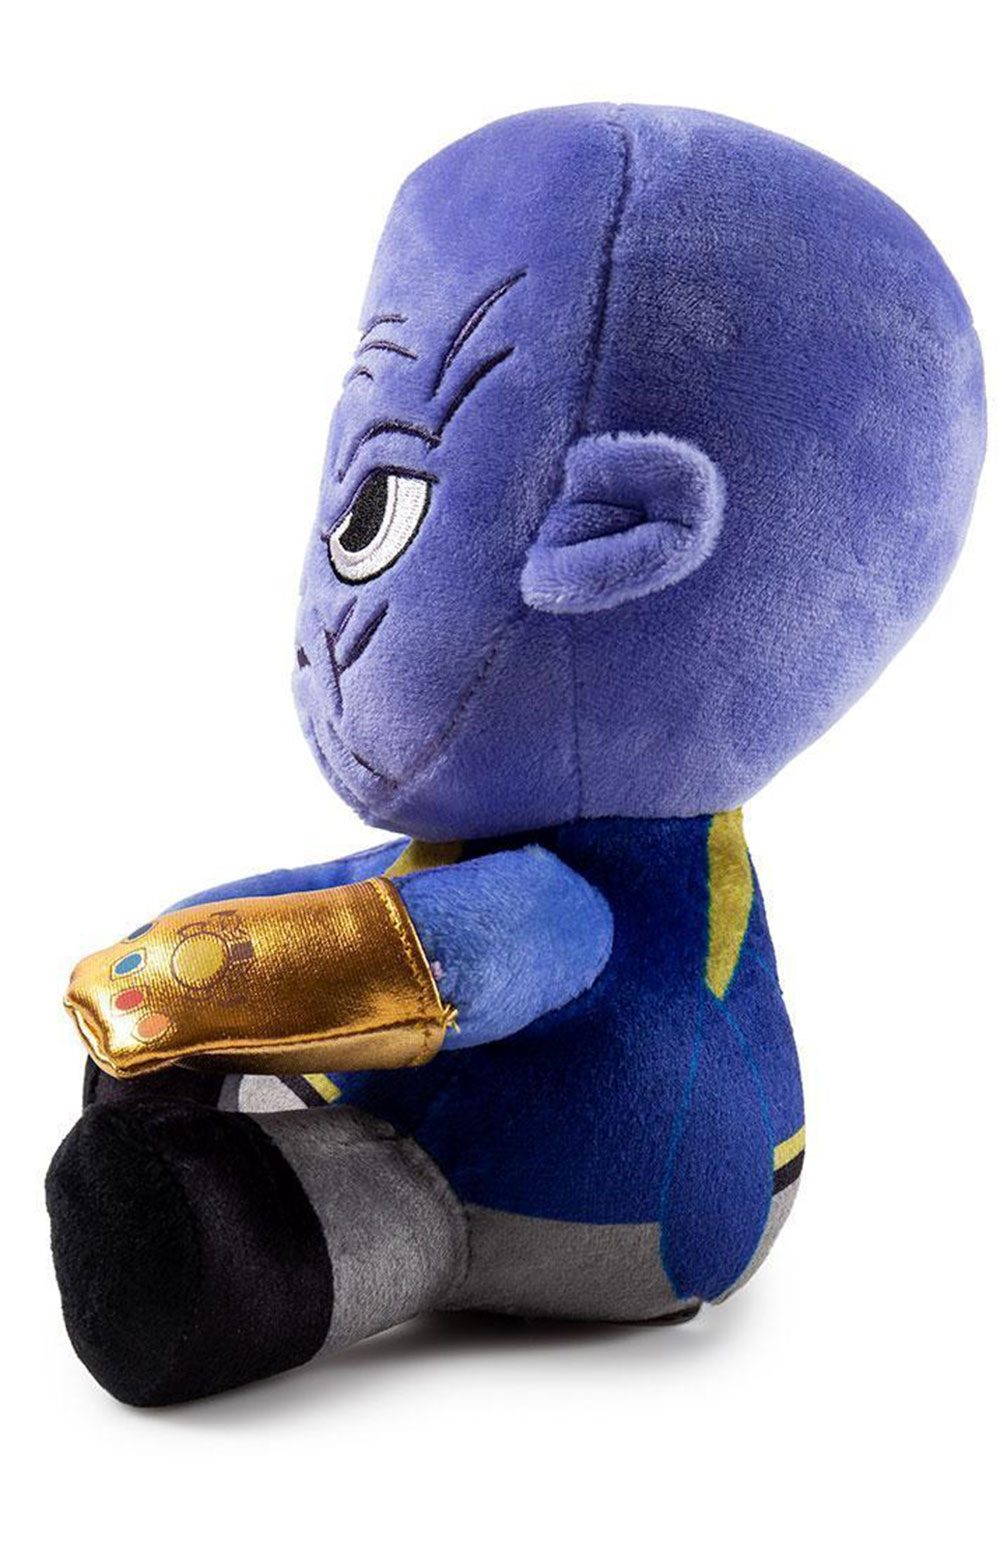 Thanos Phunny Plush Toy 5